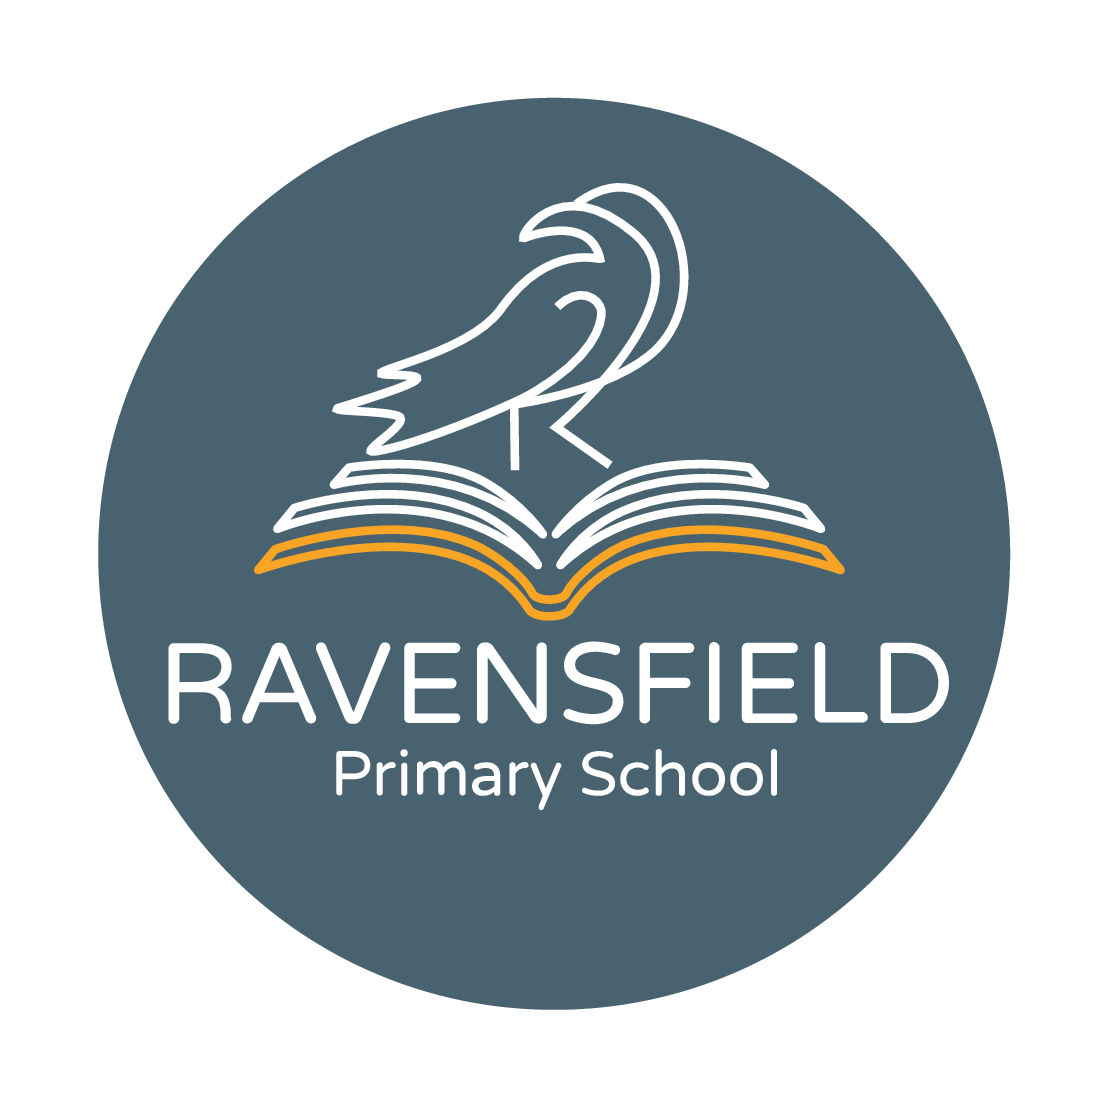 Ravensfield Primary School